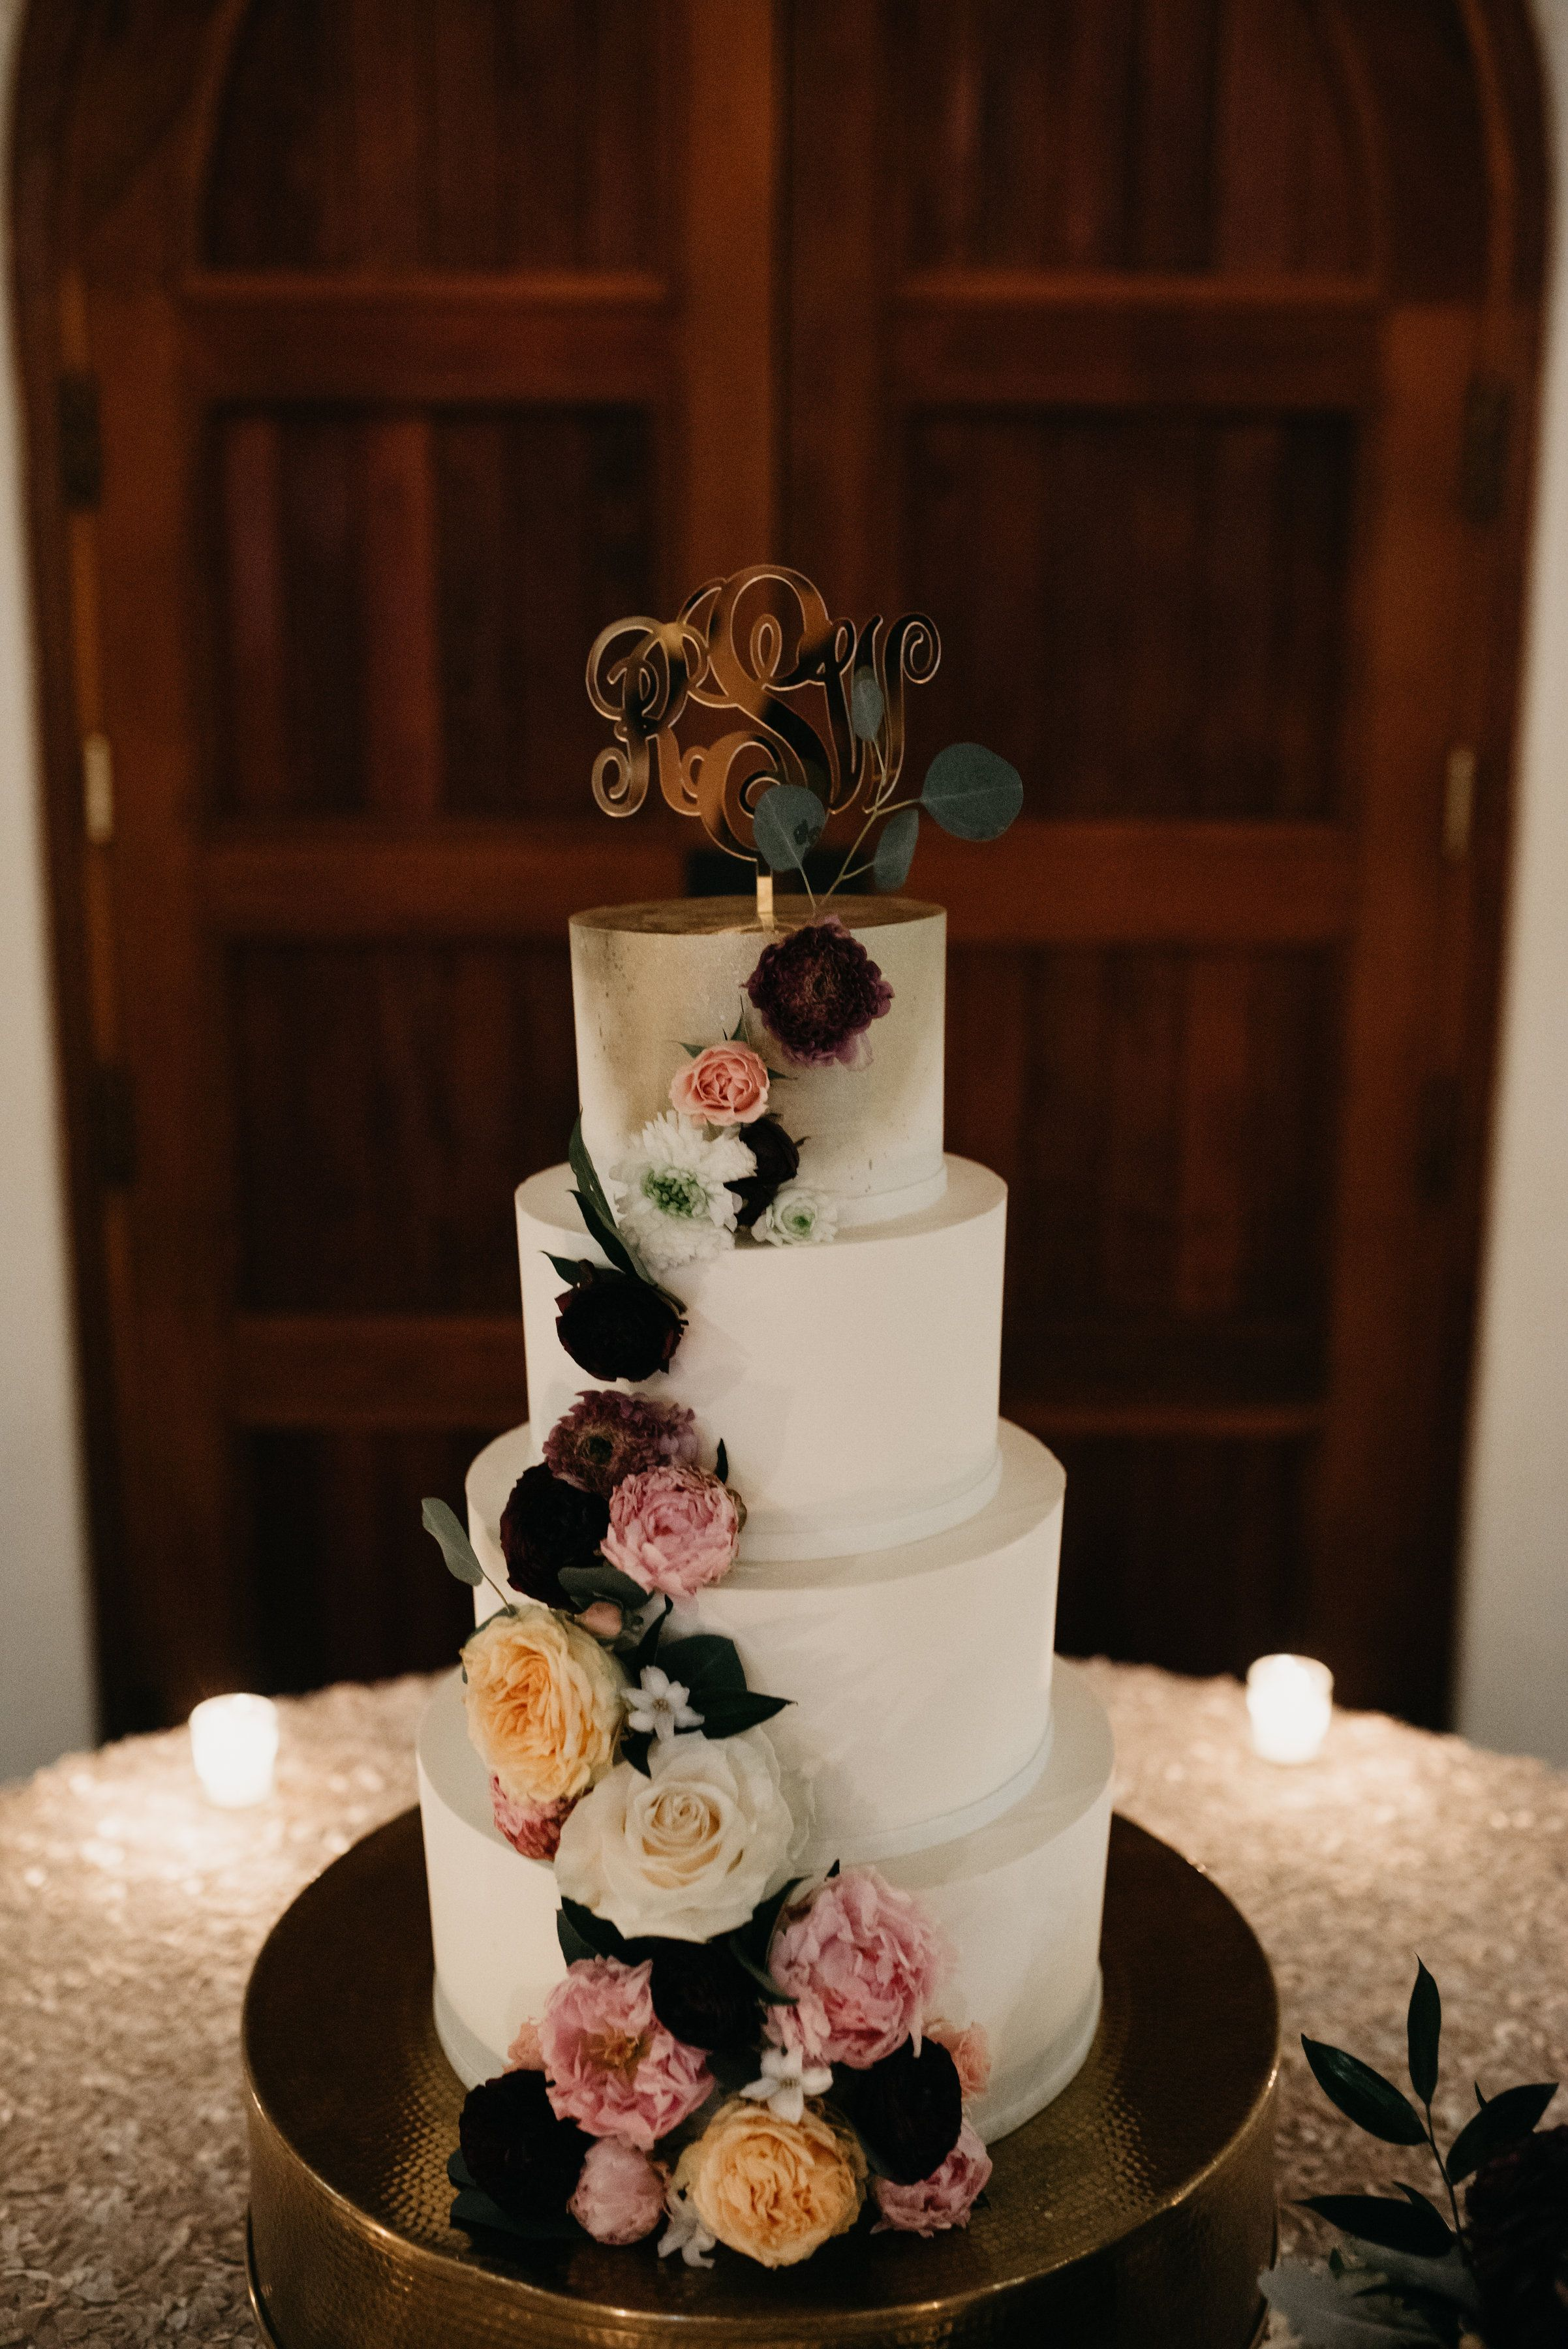 Modern Wedding Cake With Gold Airbrushing And Lush Florals Set On A